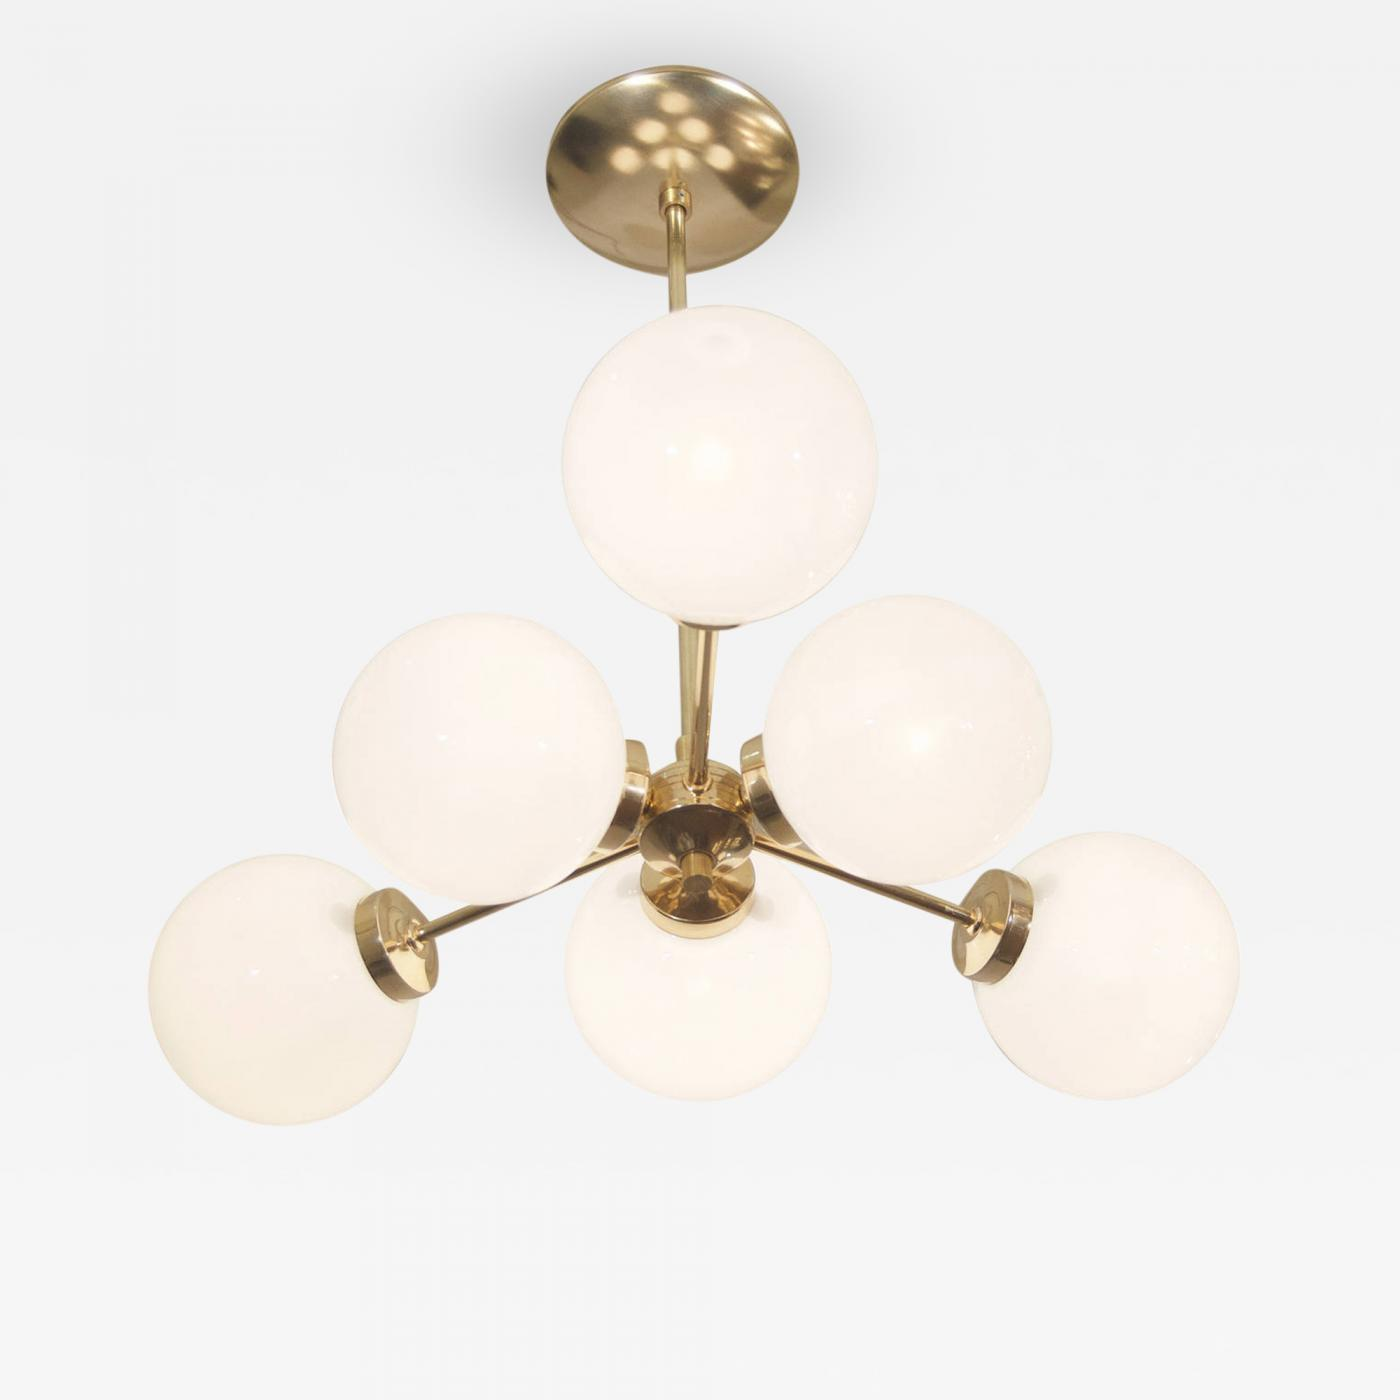 Unusual triangular form french brass and opal glass chandelier listings furniture lighting chandeliers and pendants mozeypictures Images